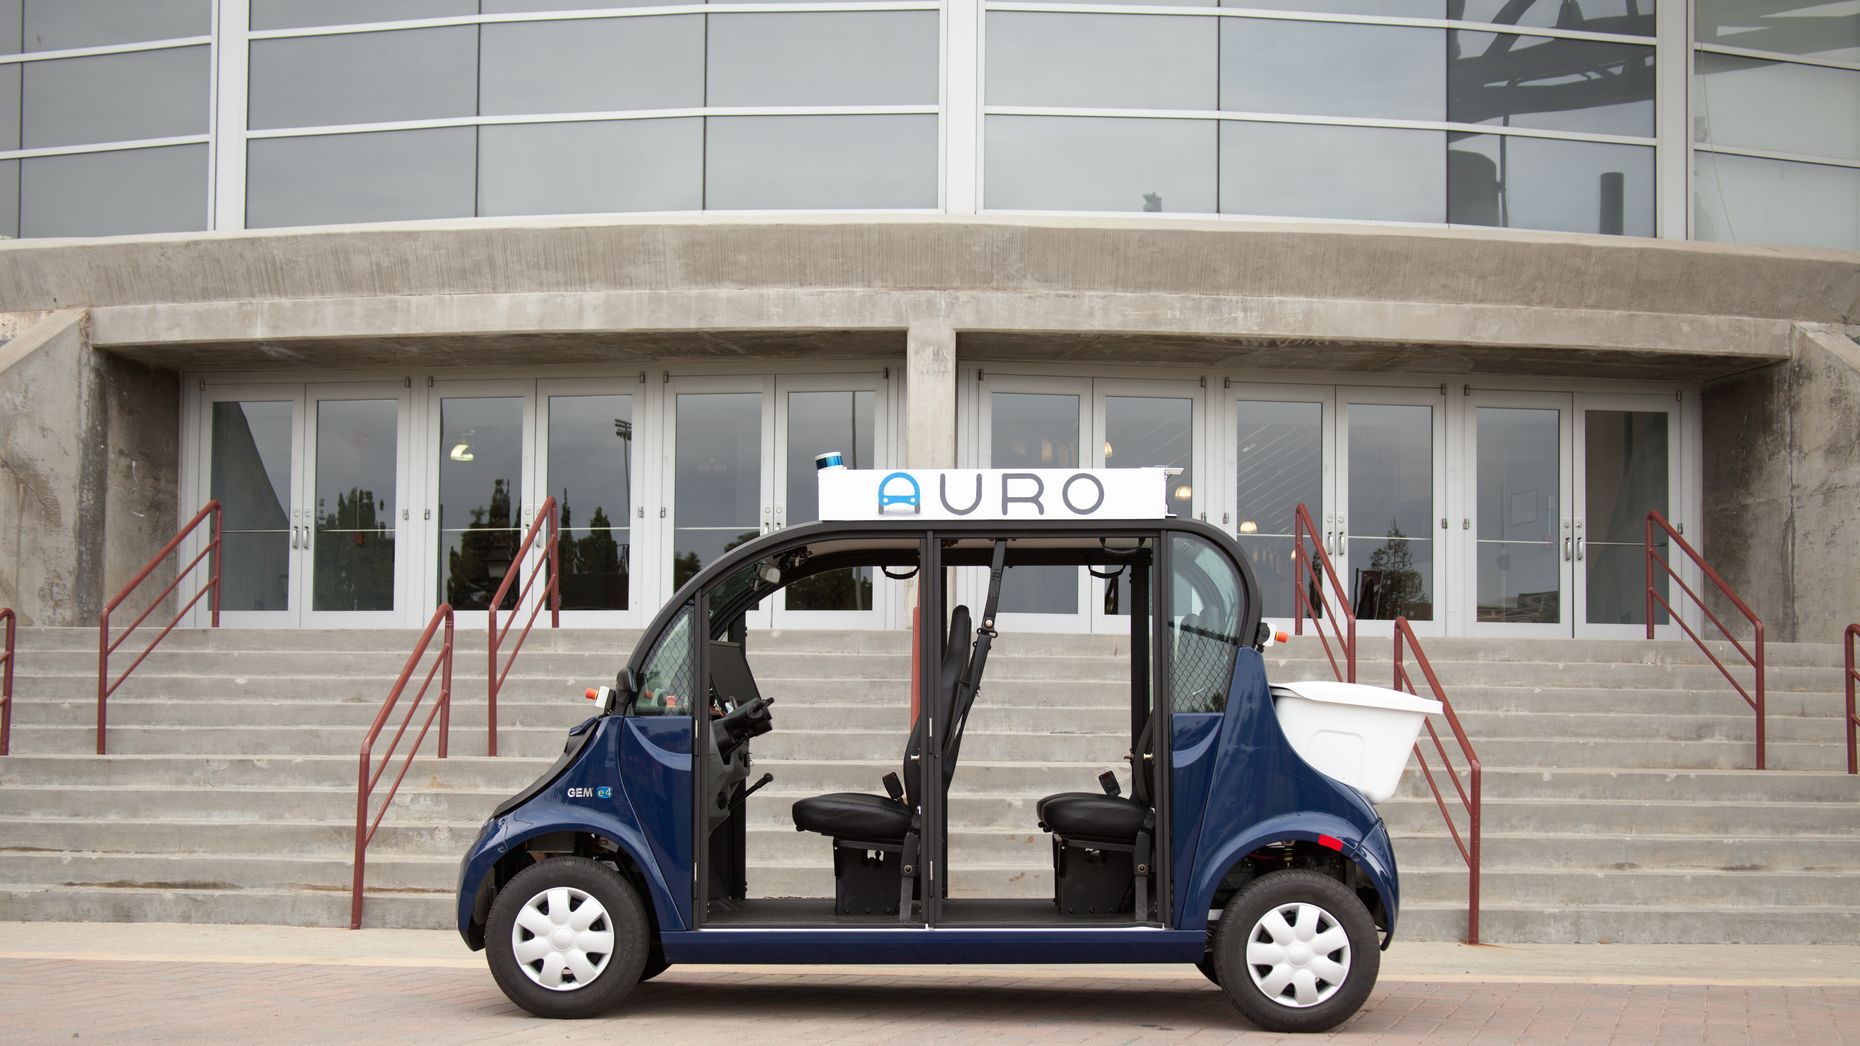 An Auro autonomous shuttle. Photo by Auro